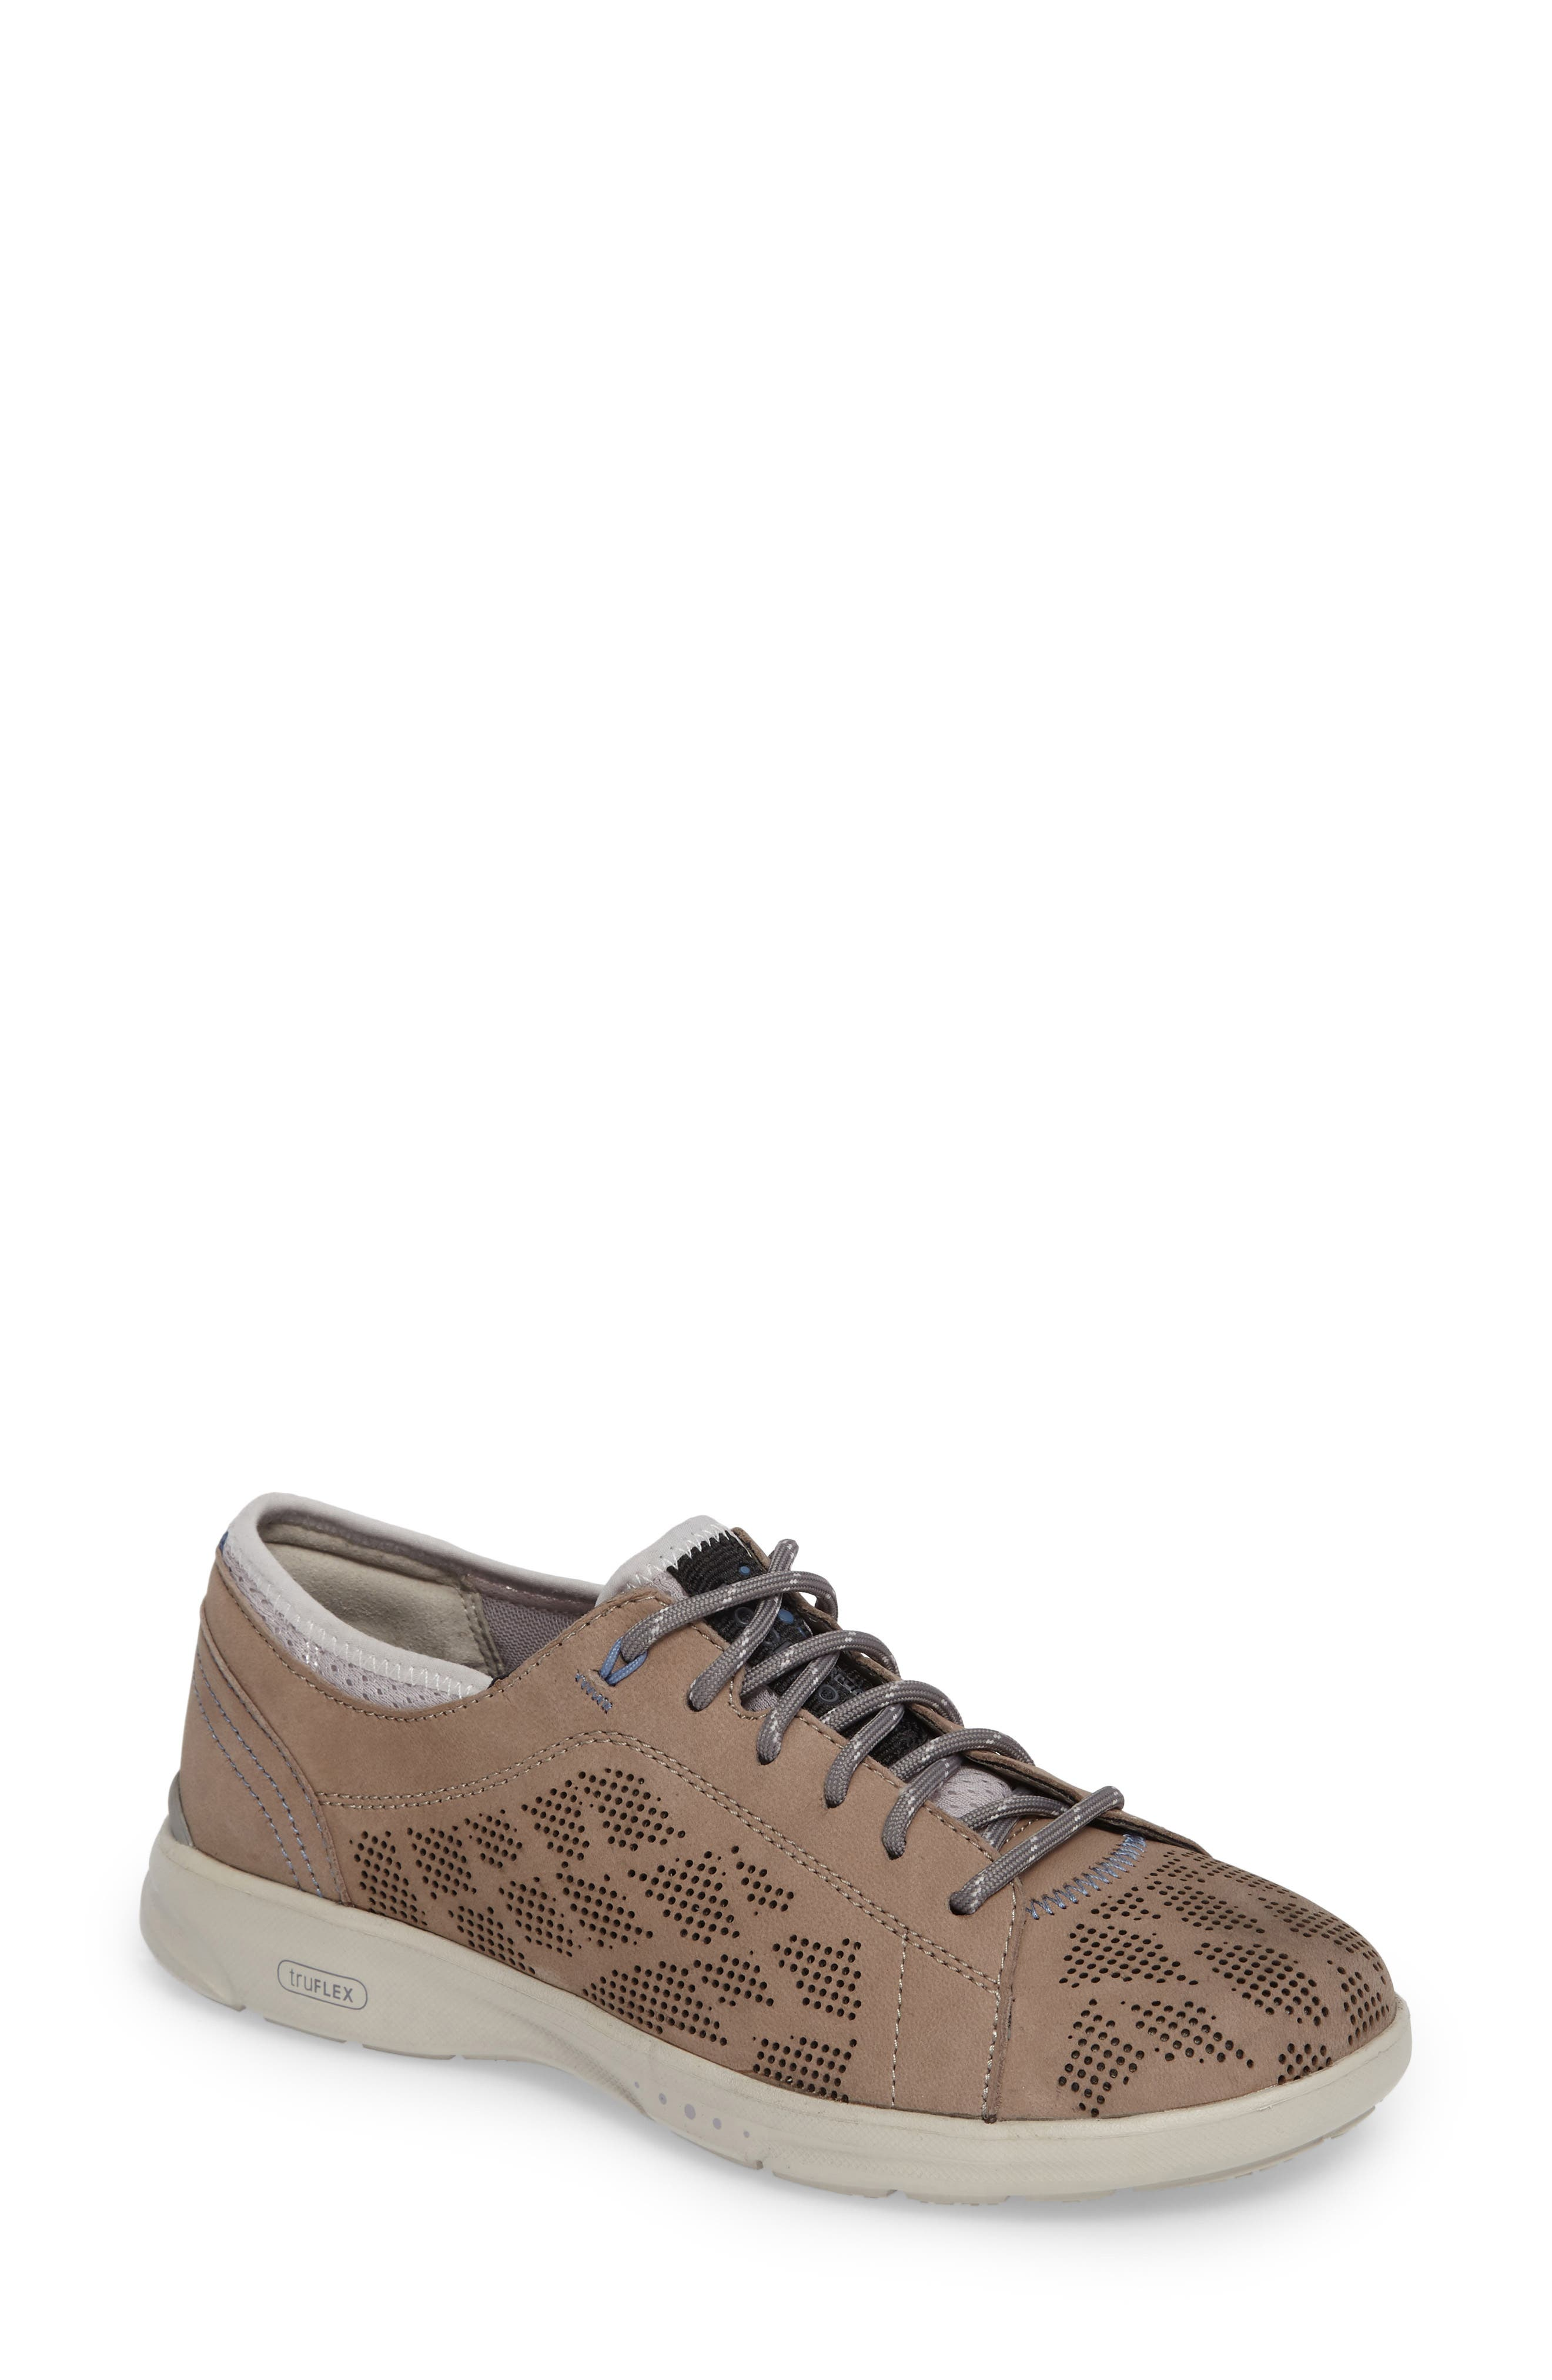 truFLEX Perforated Sneaker,                         Main,                         color, Sand Leather